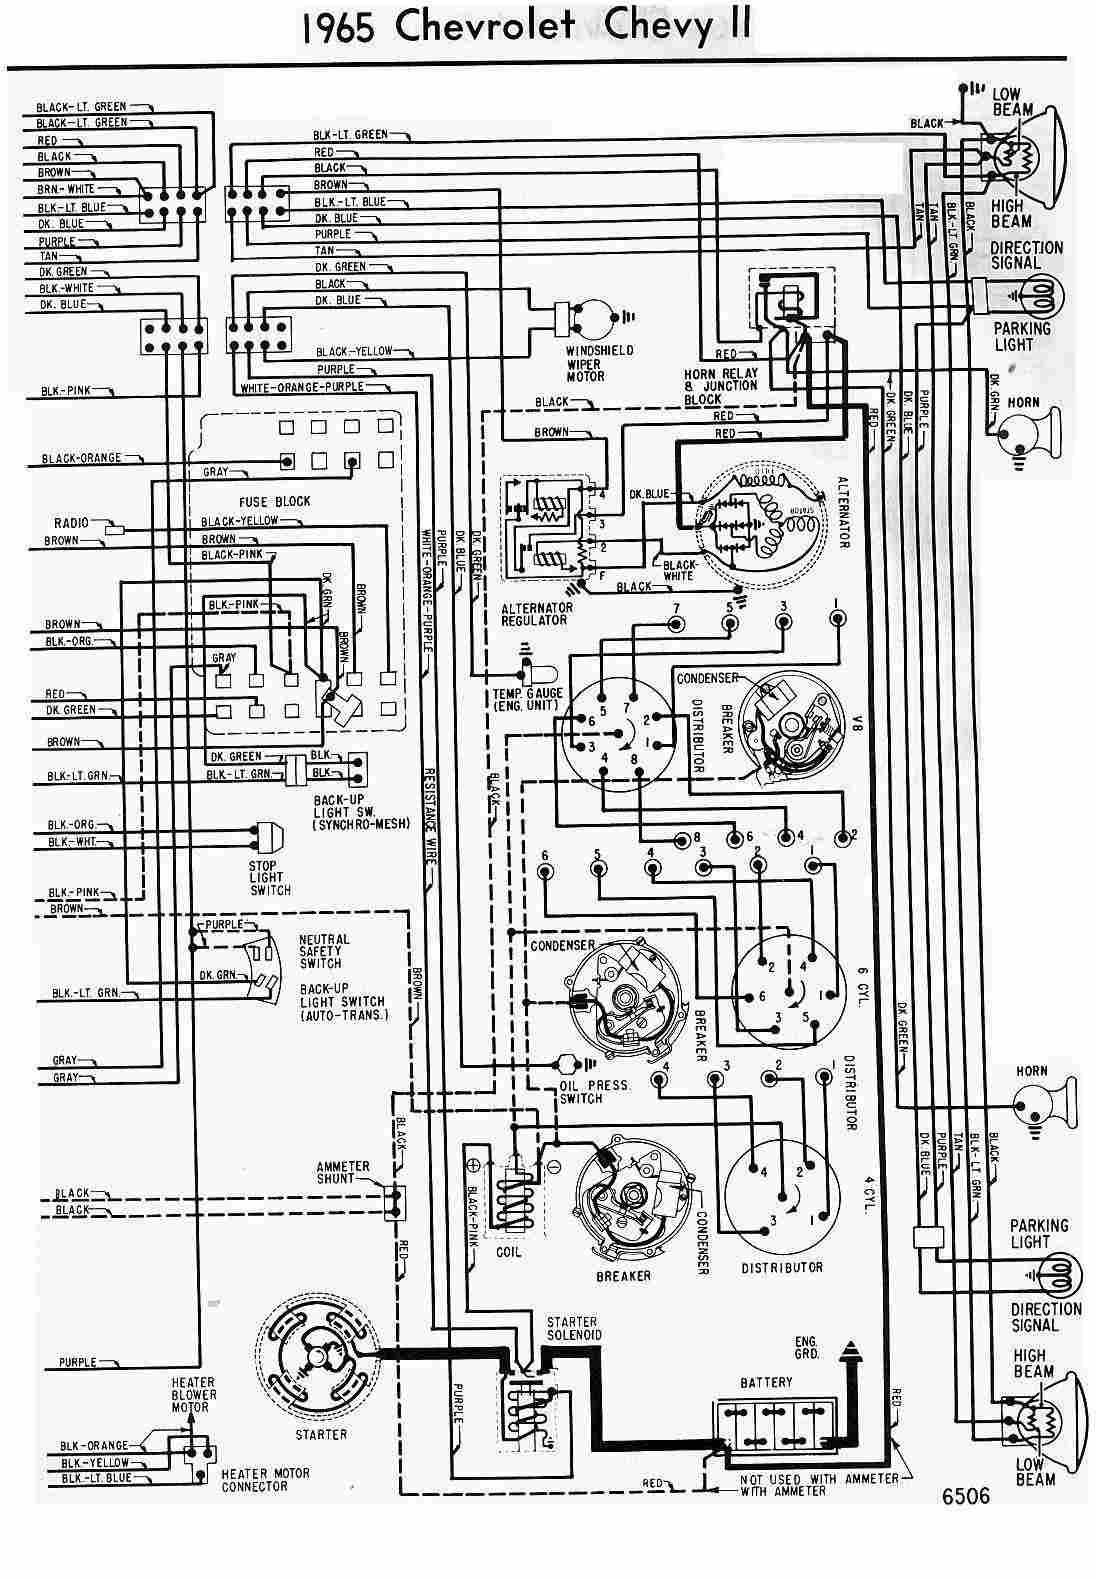 small resolution of 1966 chevelle ss engine harness diagram wiring diagram todays 1967 fairlane wiring diagram 1966 chevelle wiring